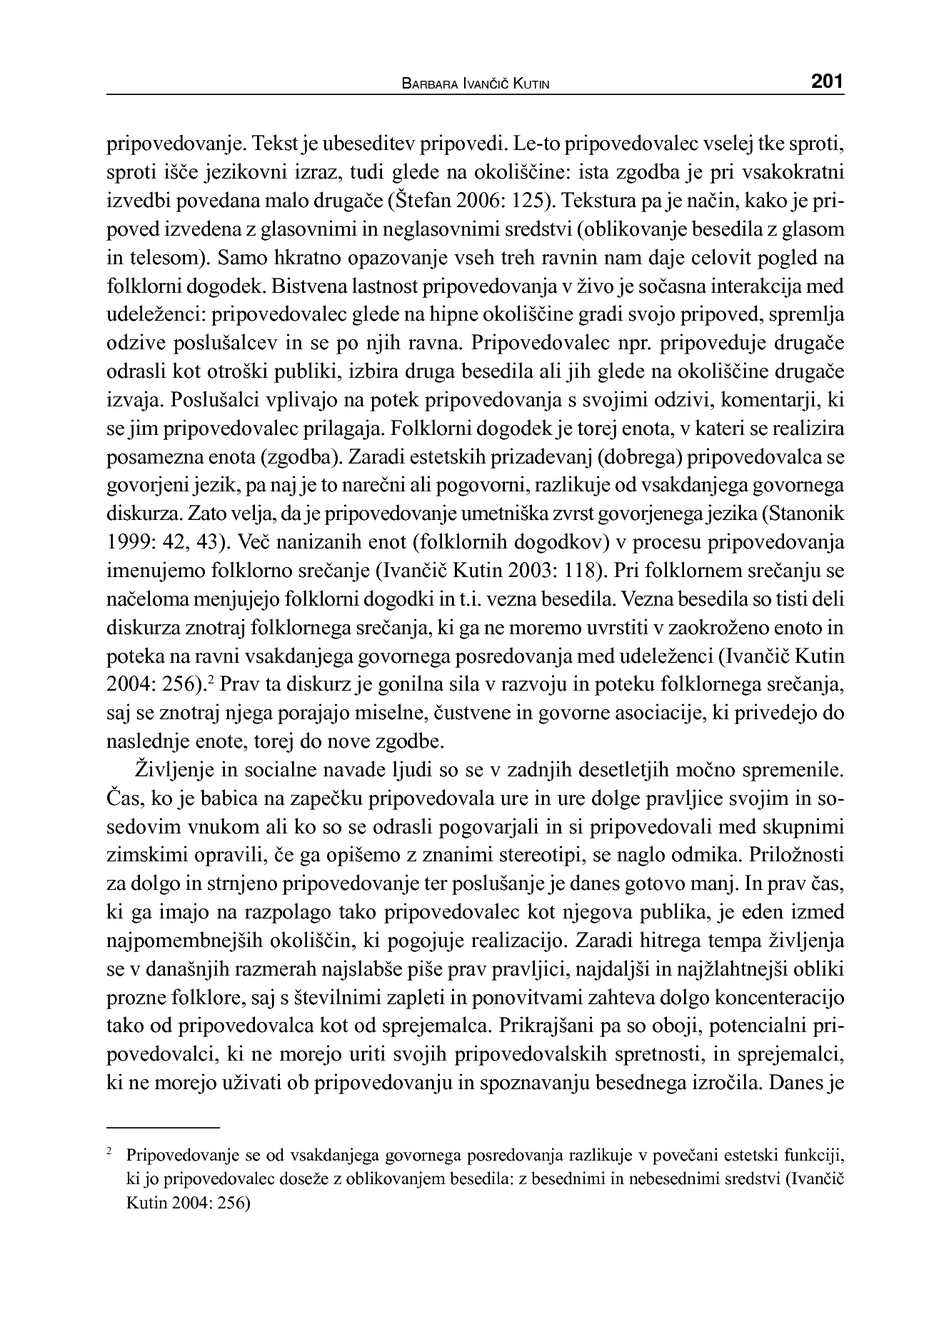 Page 201